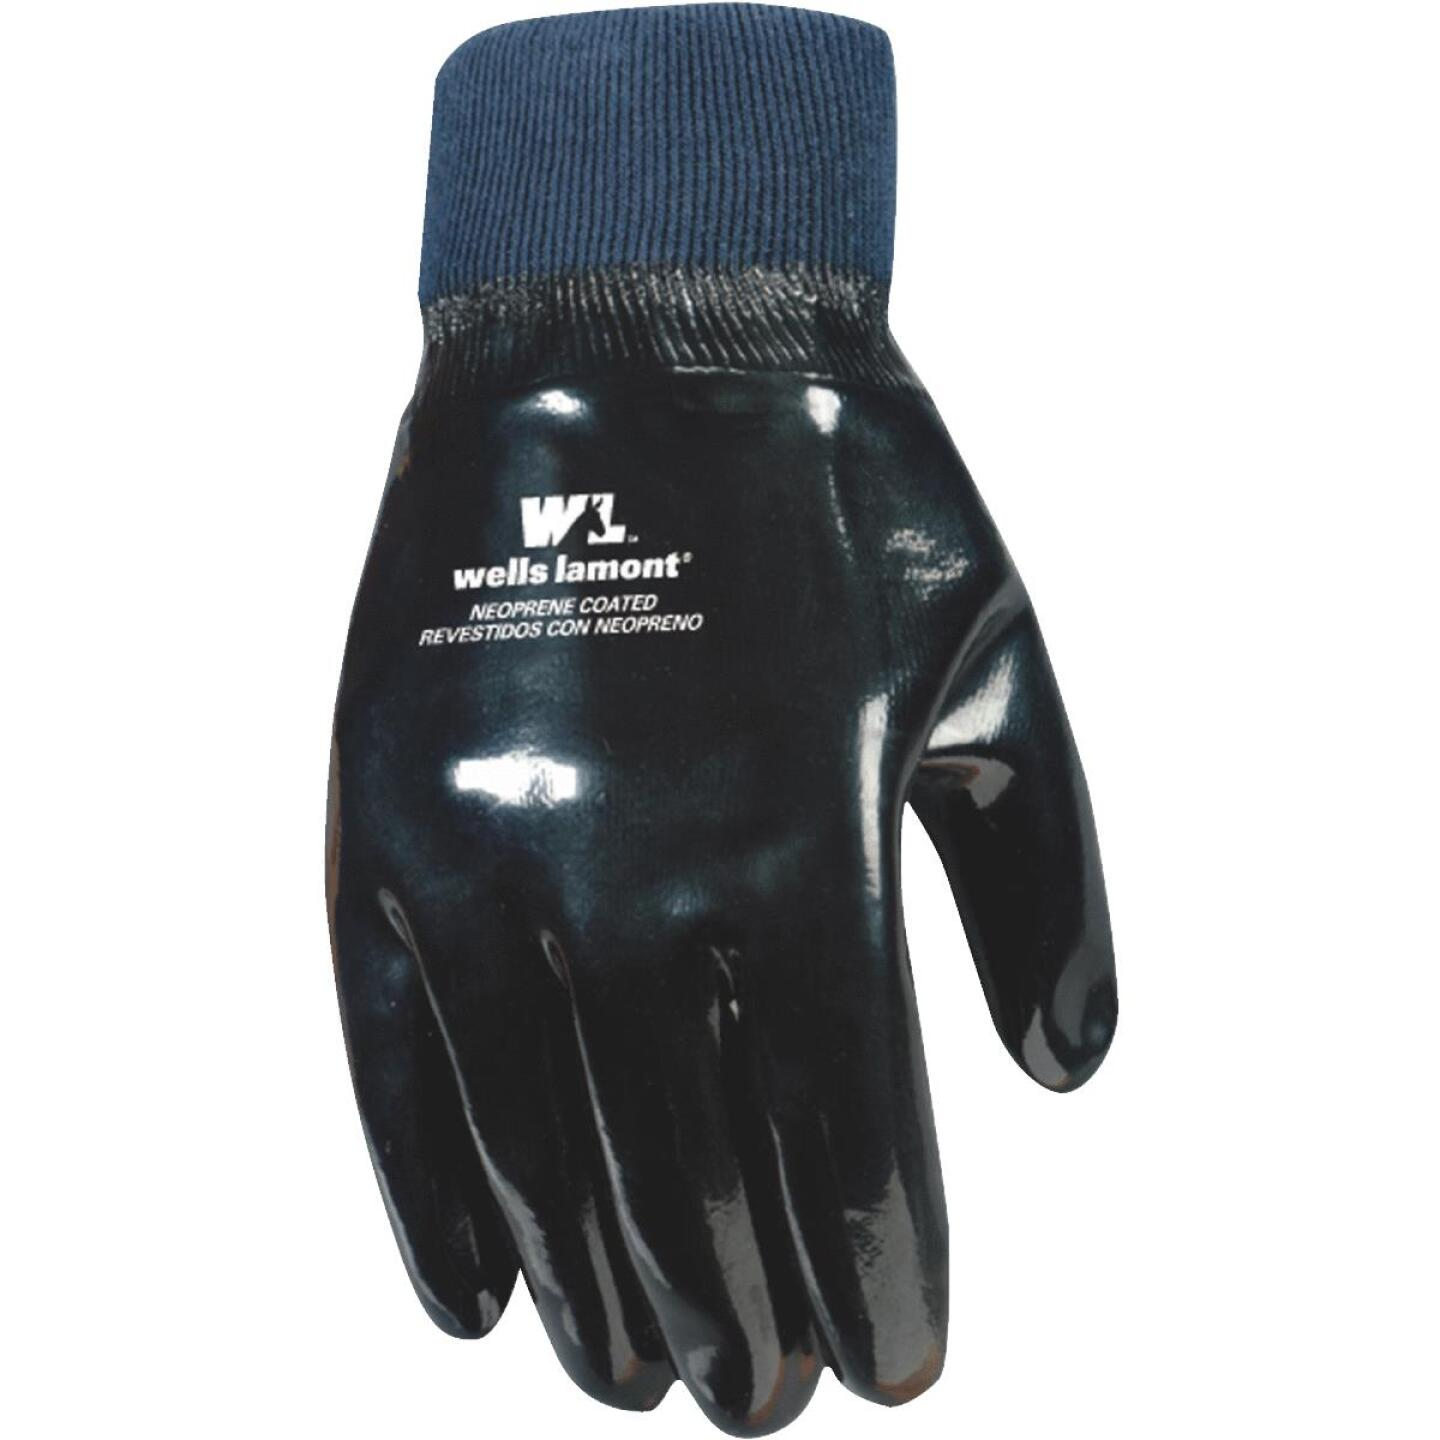 Wells Lamont Men's Large Neoprene Coated Glove Image 1